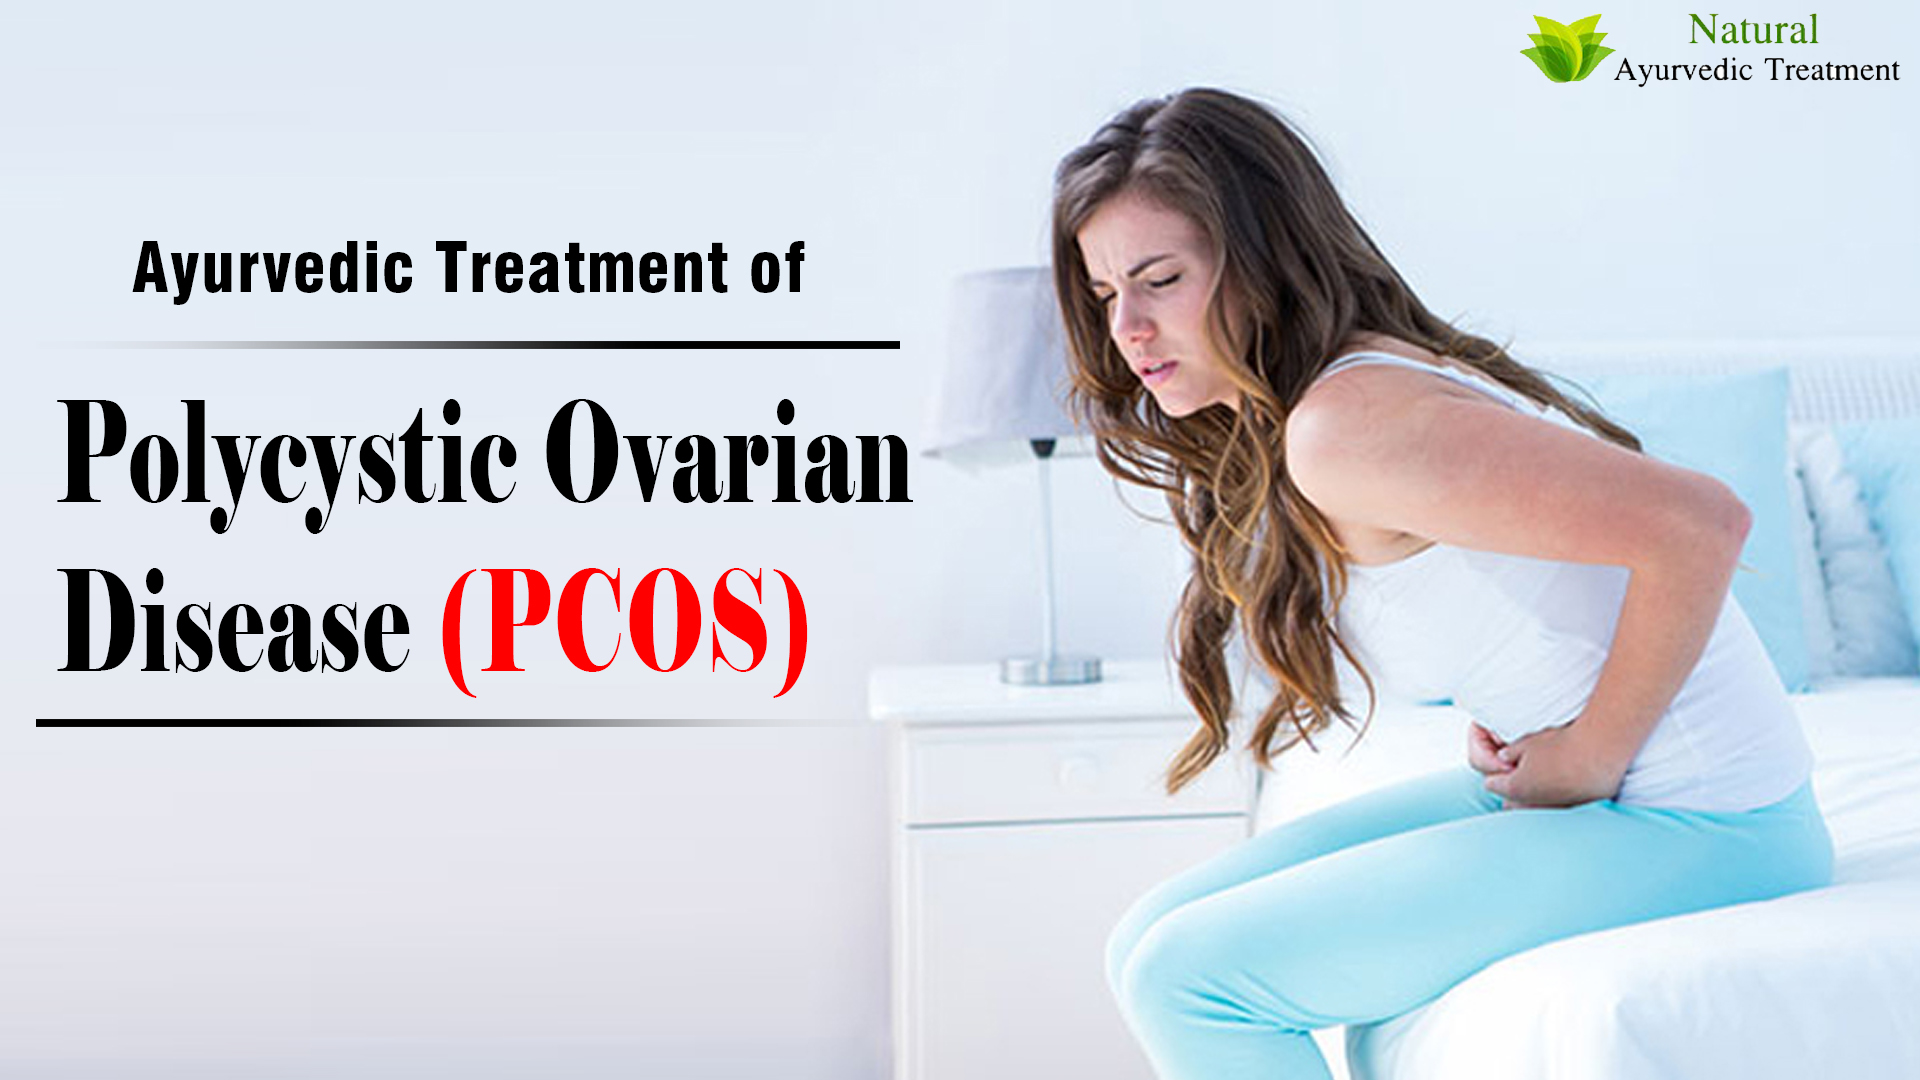 Ayurvedic Treatment of Polycystic Ovarian Disease